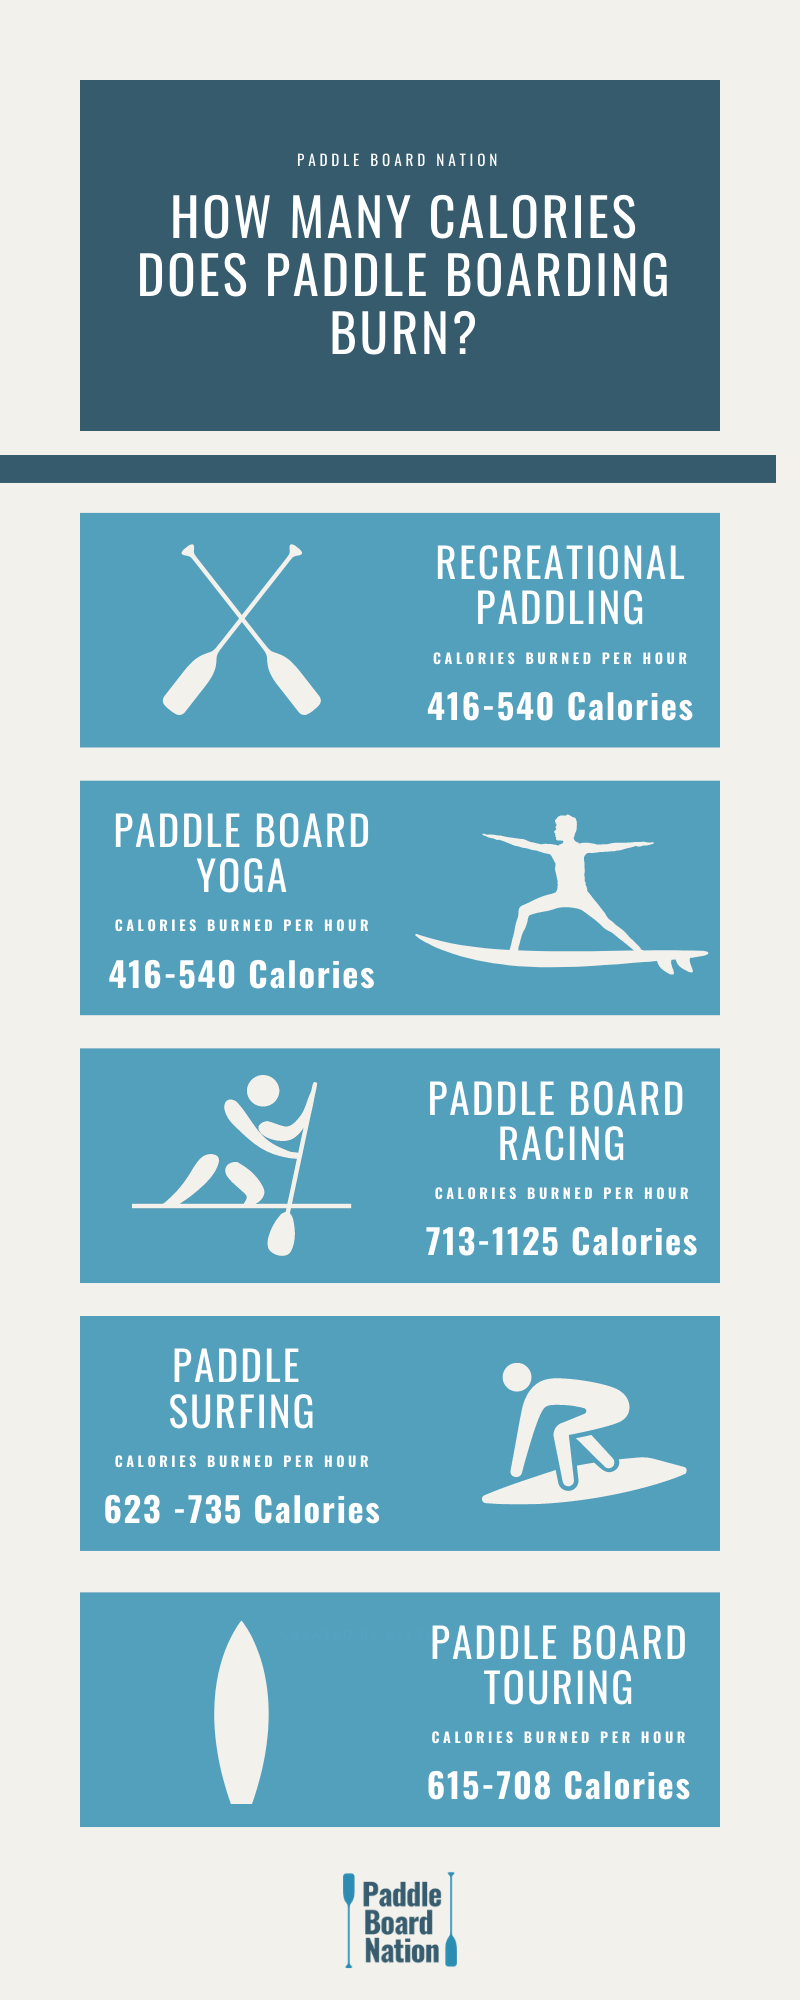 How Many Calories Does Paddle Boarding Burn Infographic